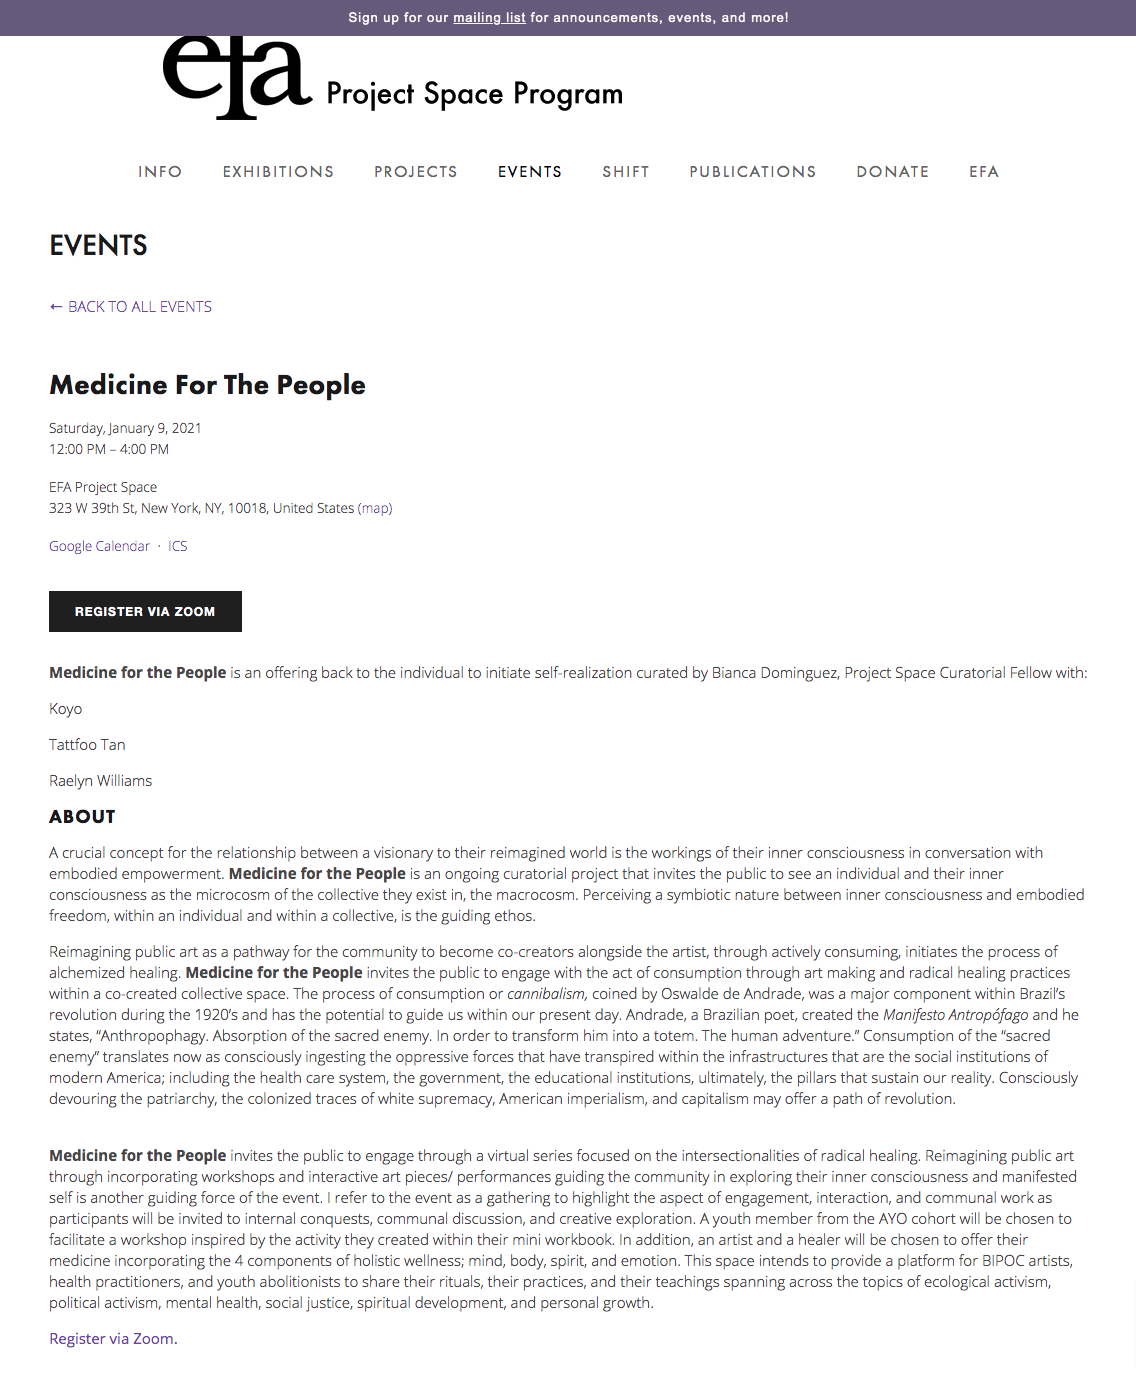 Medicine-for-the-People-—-EFA-Project-Space